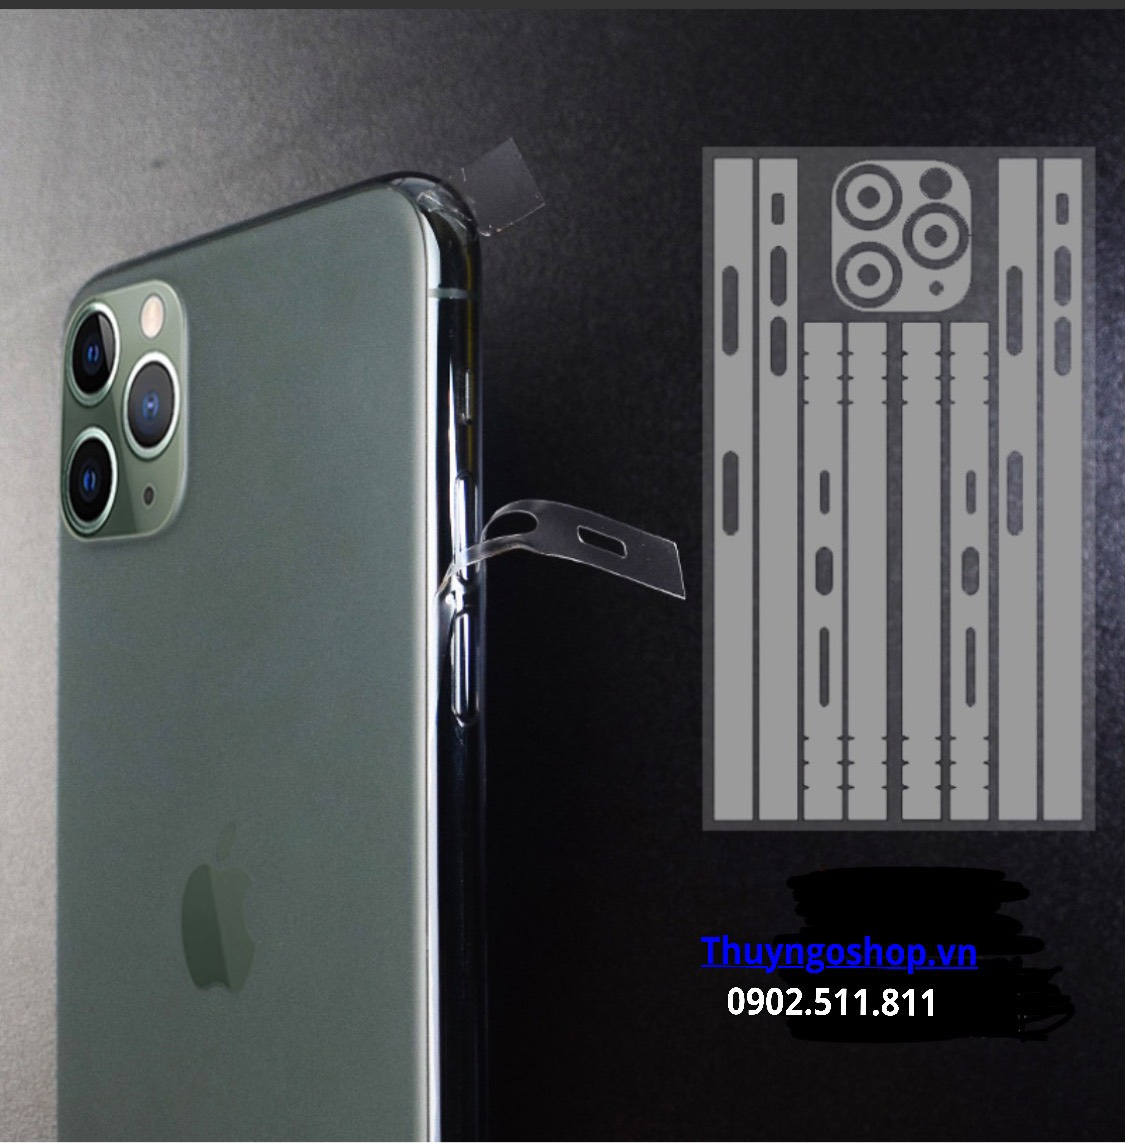 PPF 4 cạnh viền trong suốt / mờ Iphone X/Xs